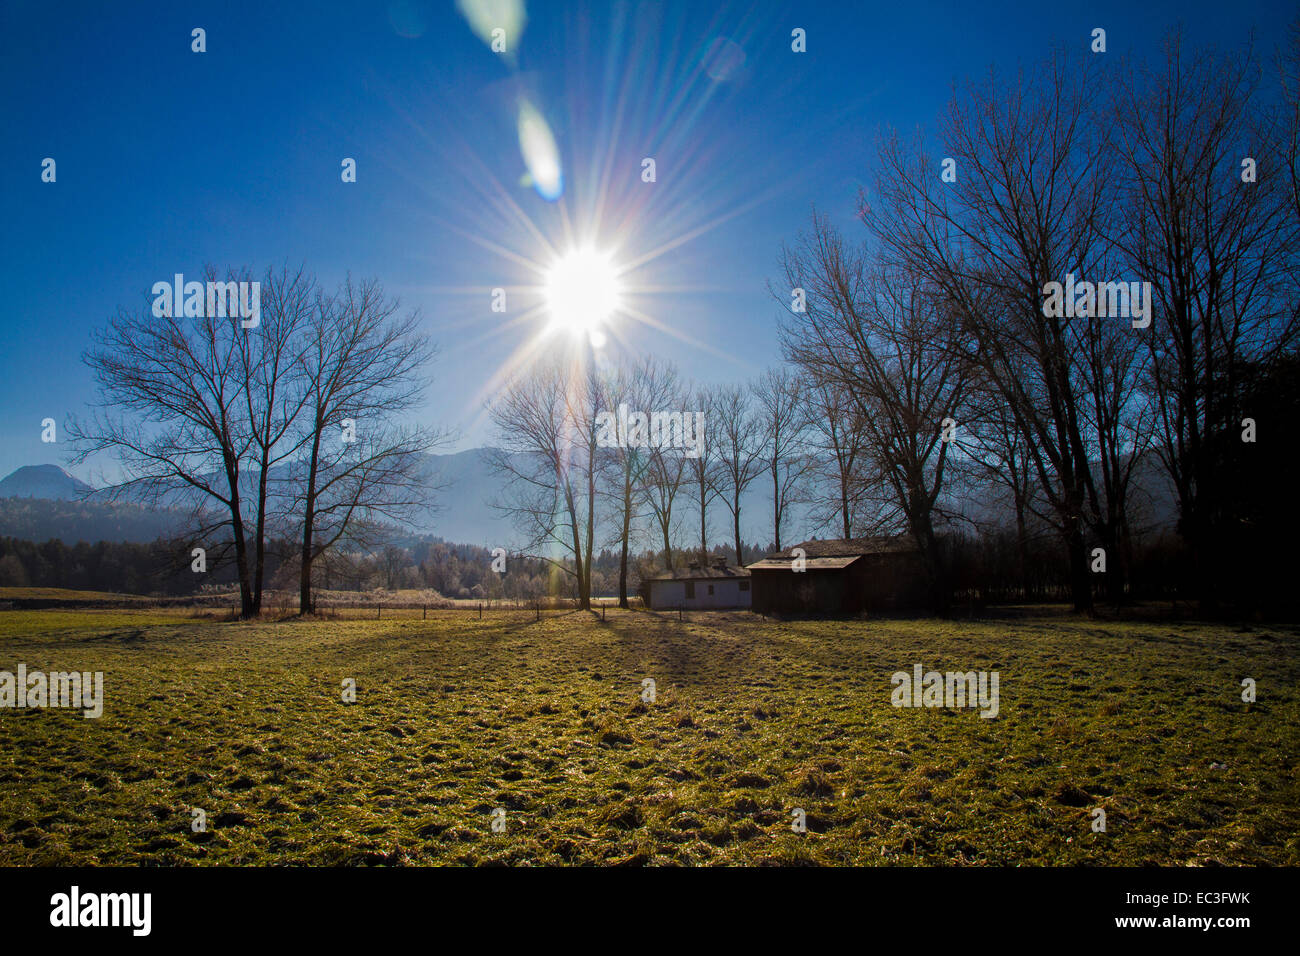 Sun shines through trees - Stock Image